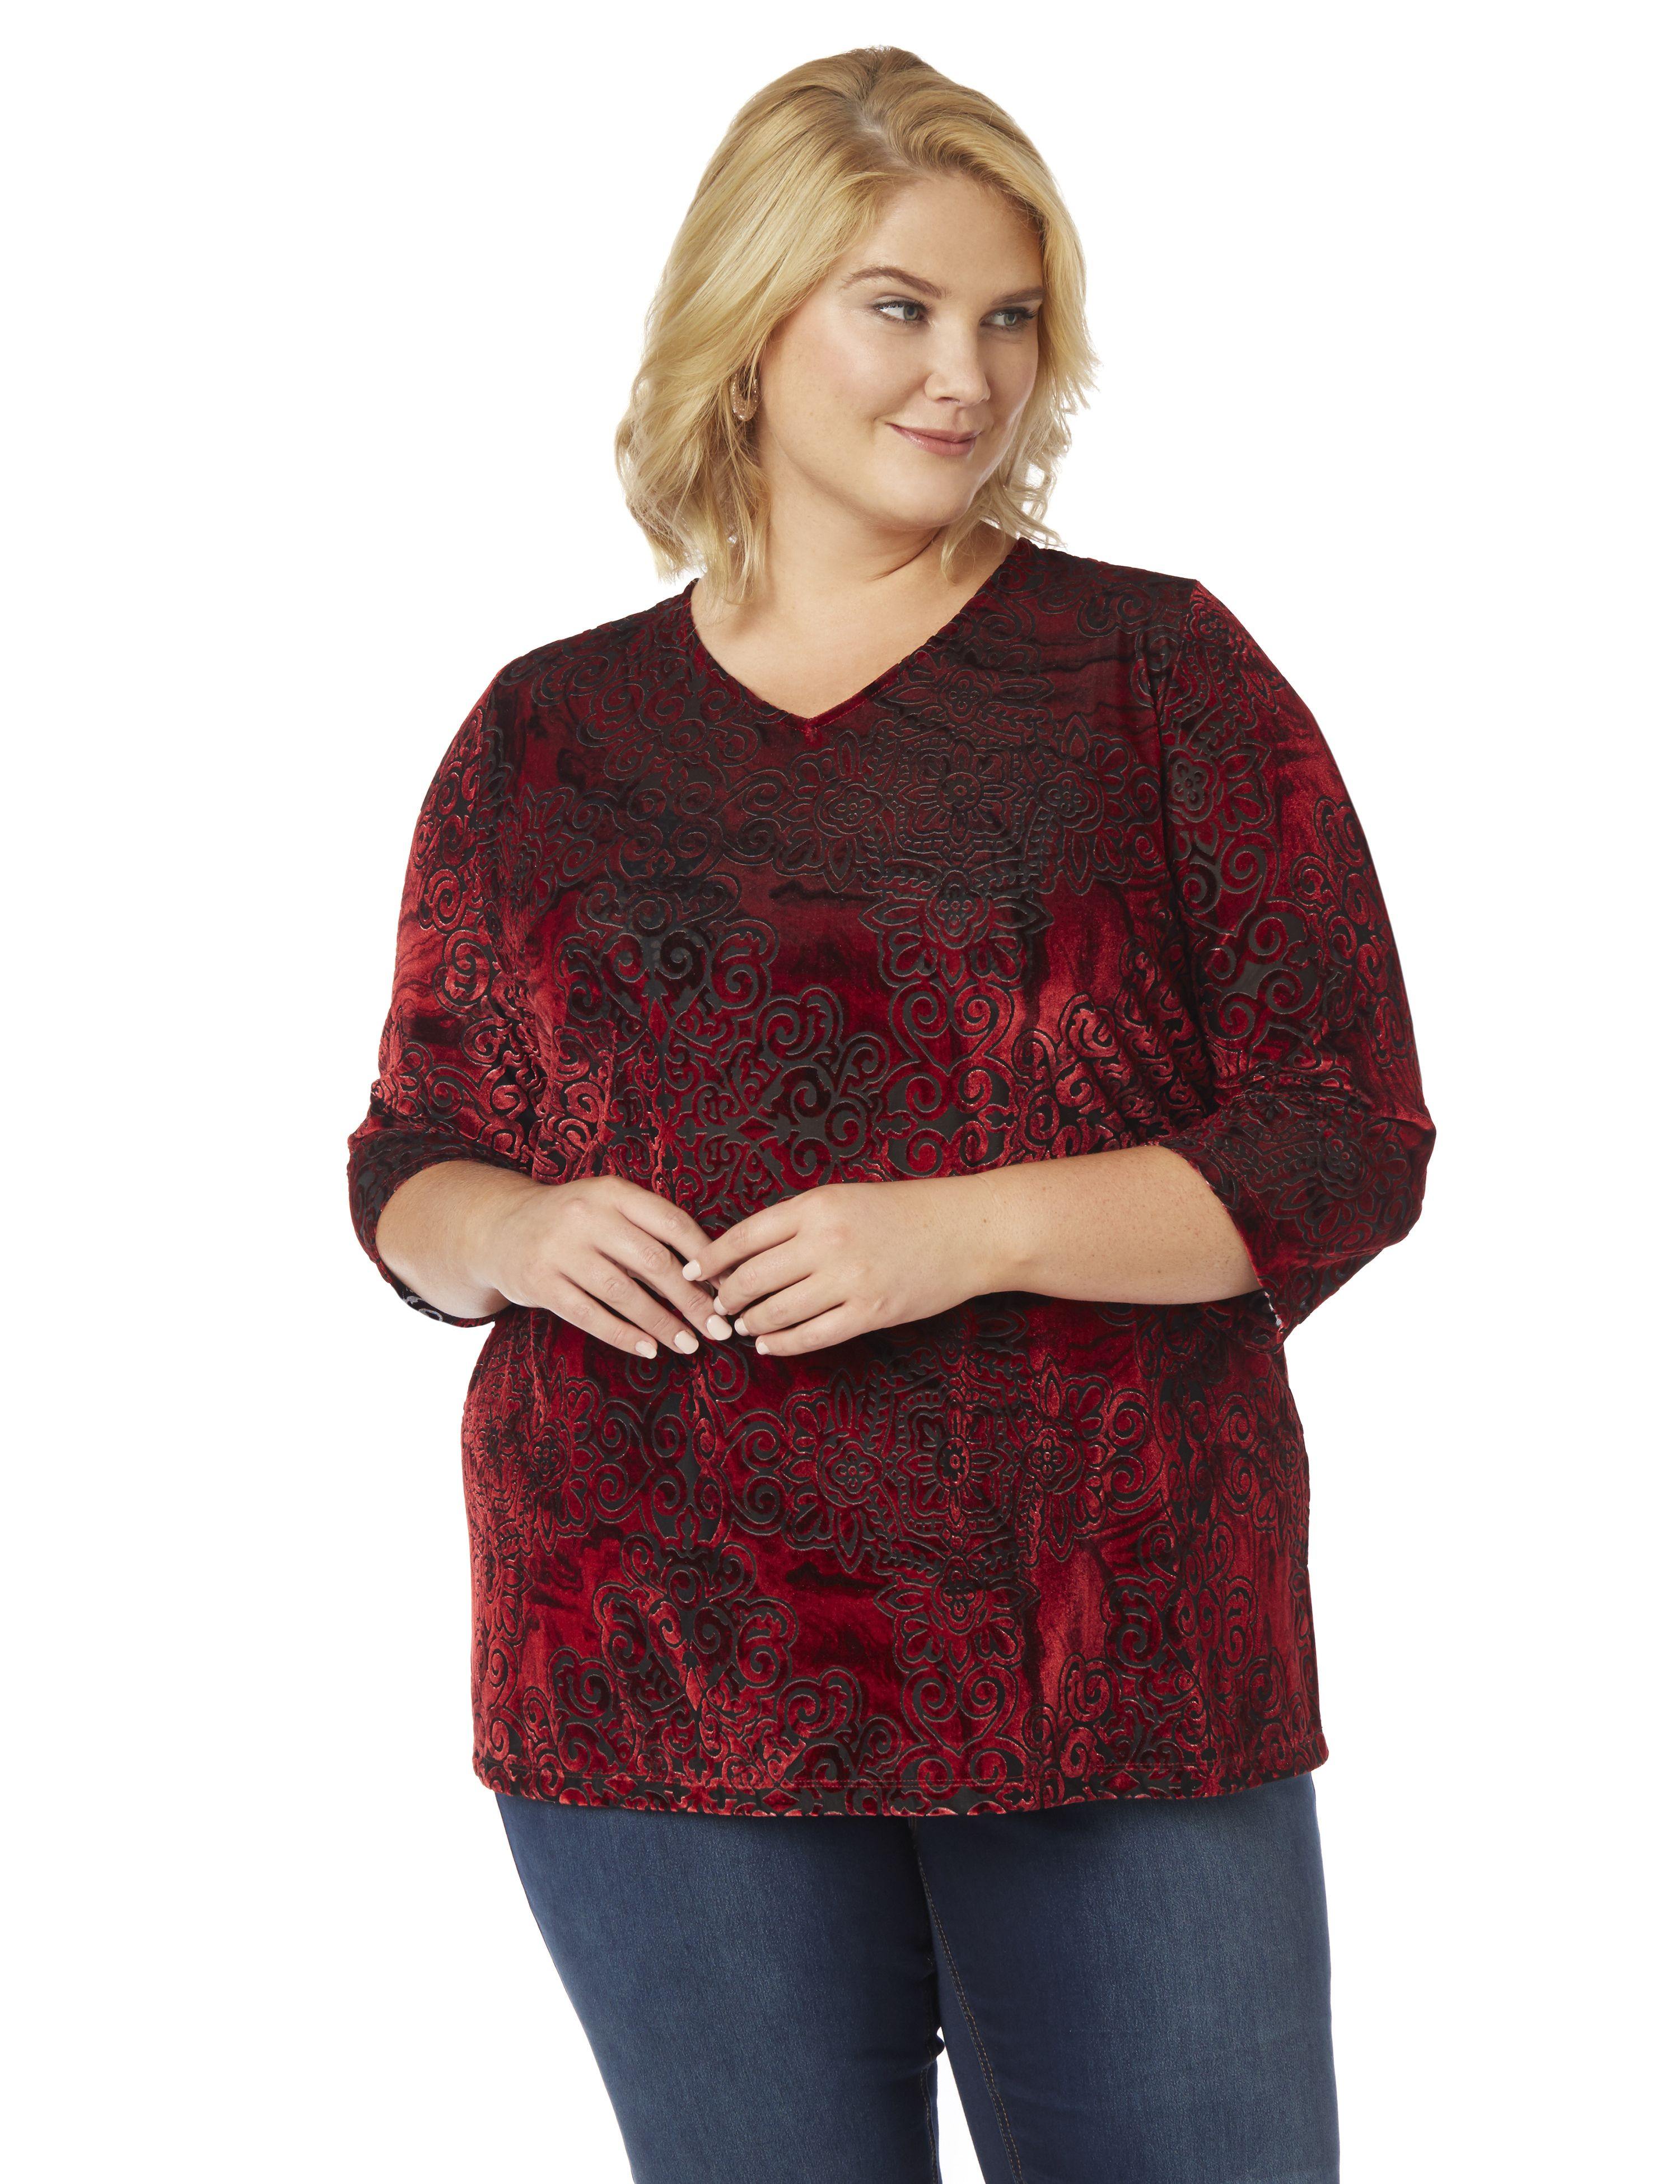 Velvet Paisley Top 1084911 3QS VNeck Burnout Velvet A/ MP-300090338